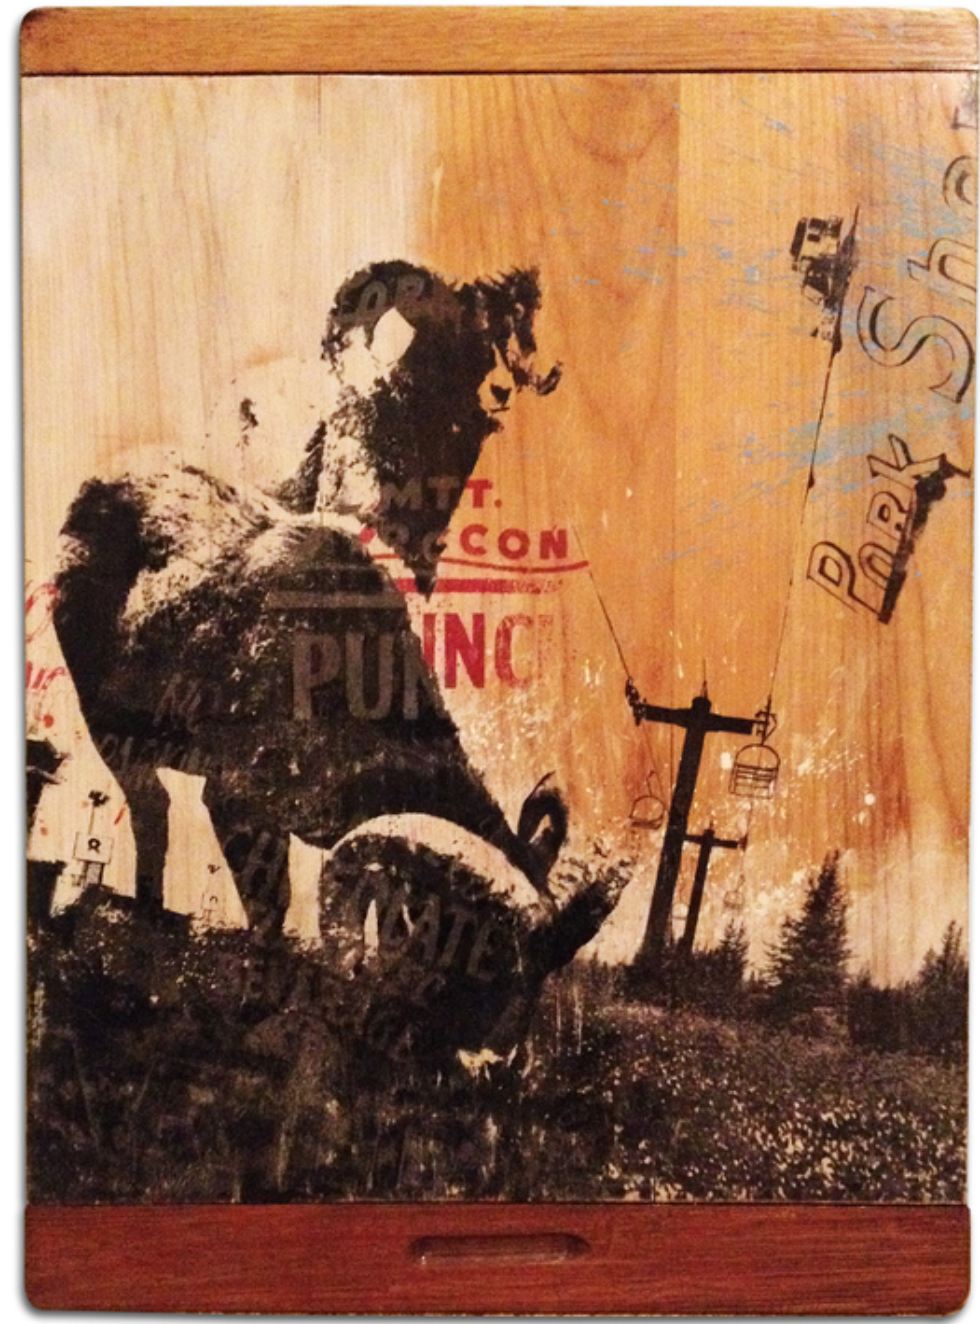 Brett Matarazzo - http://tarazzoVO.comEnvironmentally conscious art that uses post industrial reclaimed wood as canvas. Mixed media consisting of paint, ink, untraditional digital transfer, and laser etching.